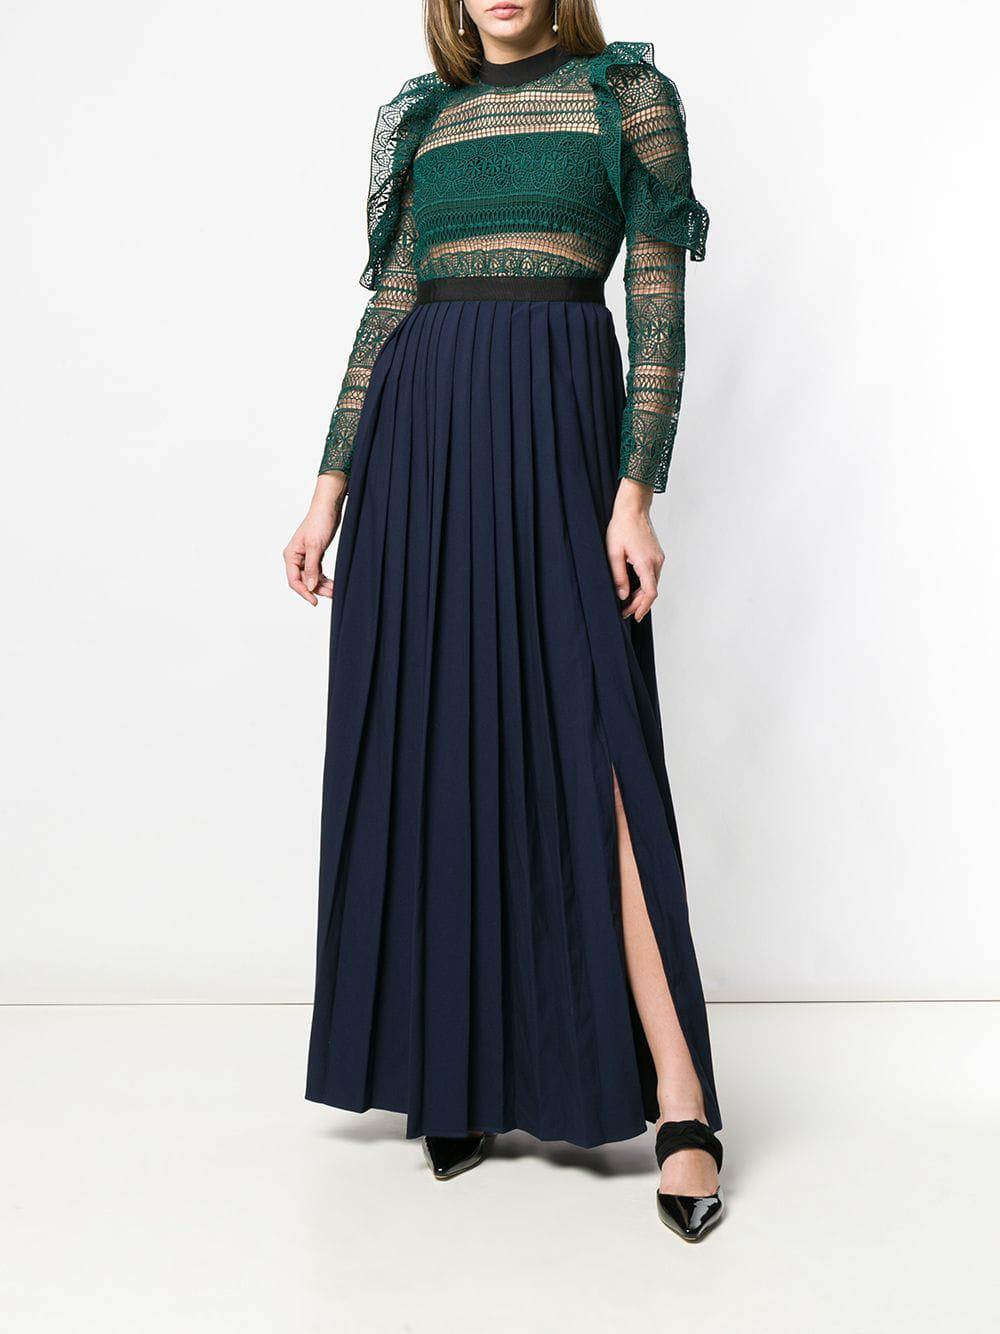 8d6c767a0cbee Self-Portrait Lace Pleated Evening Dress in Green - Lyst